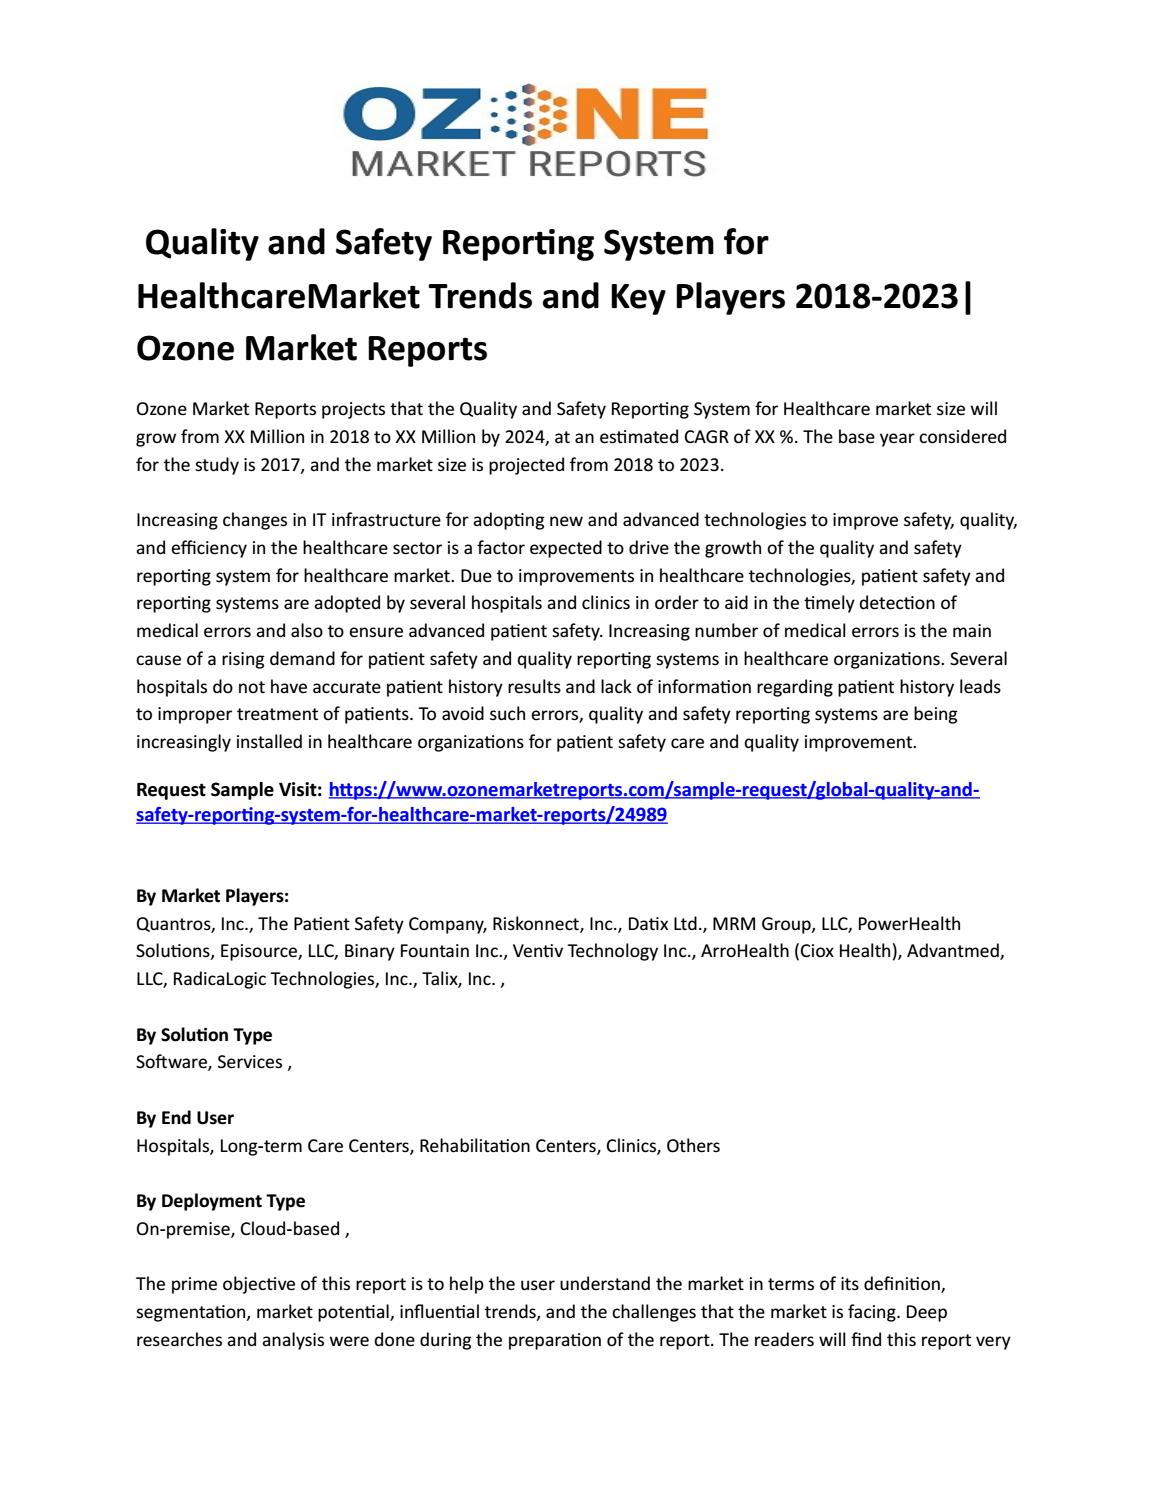 Quality and Safety Reporting System for HealthcareMarket